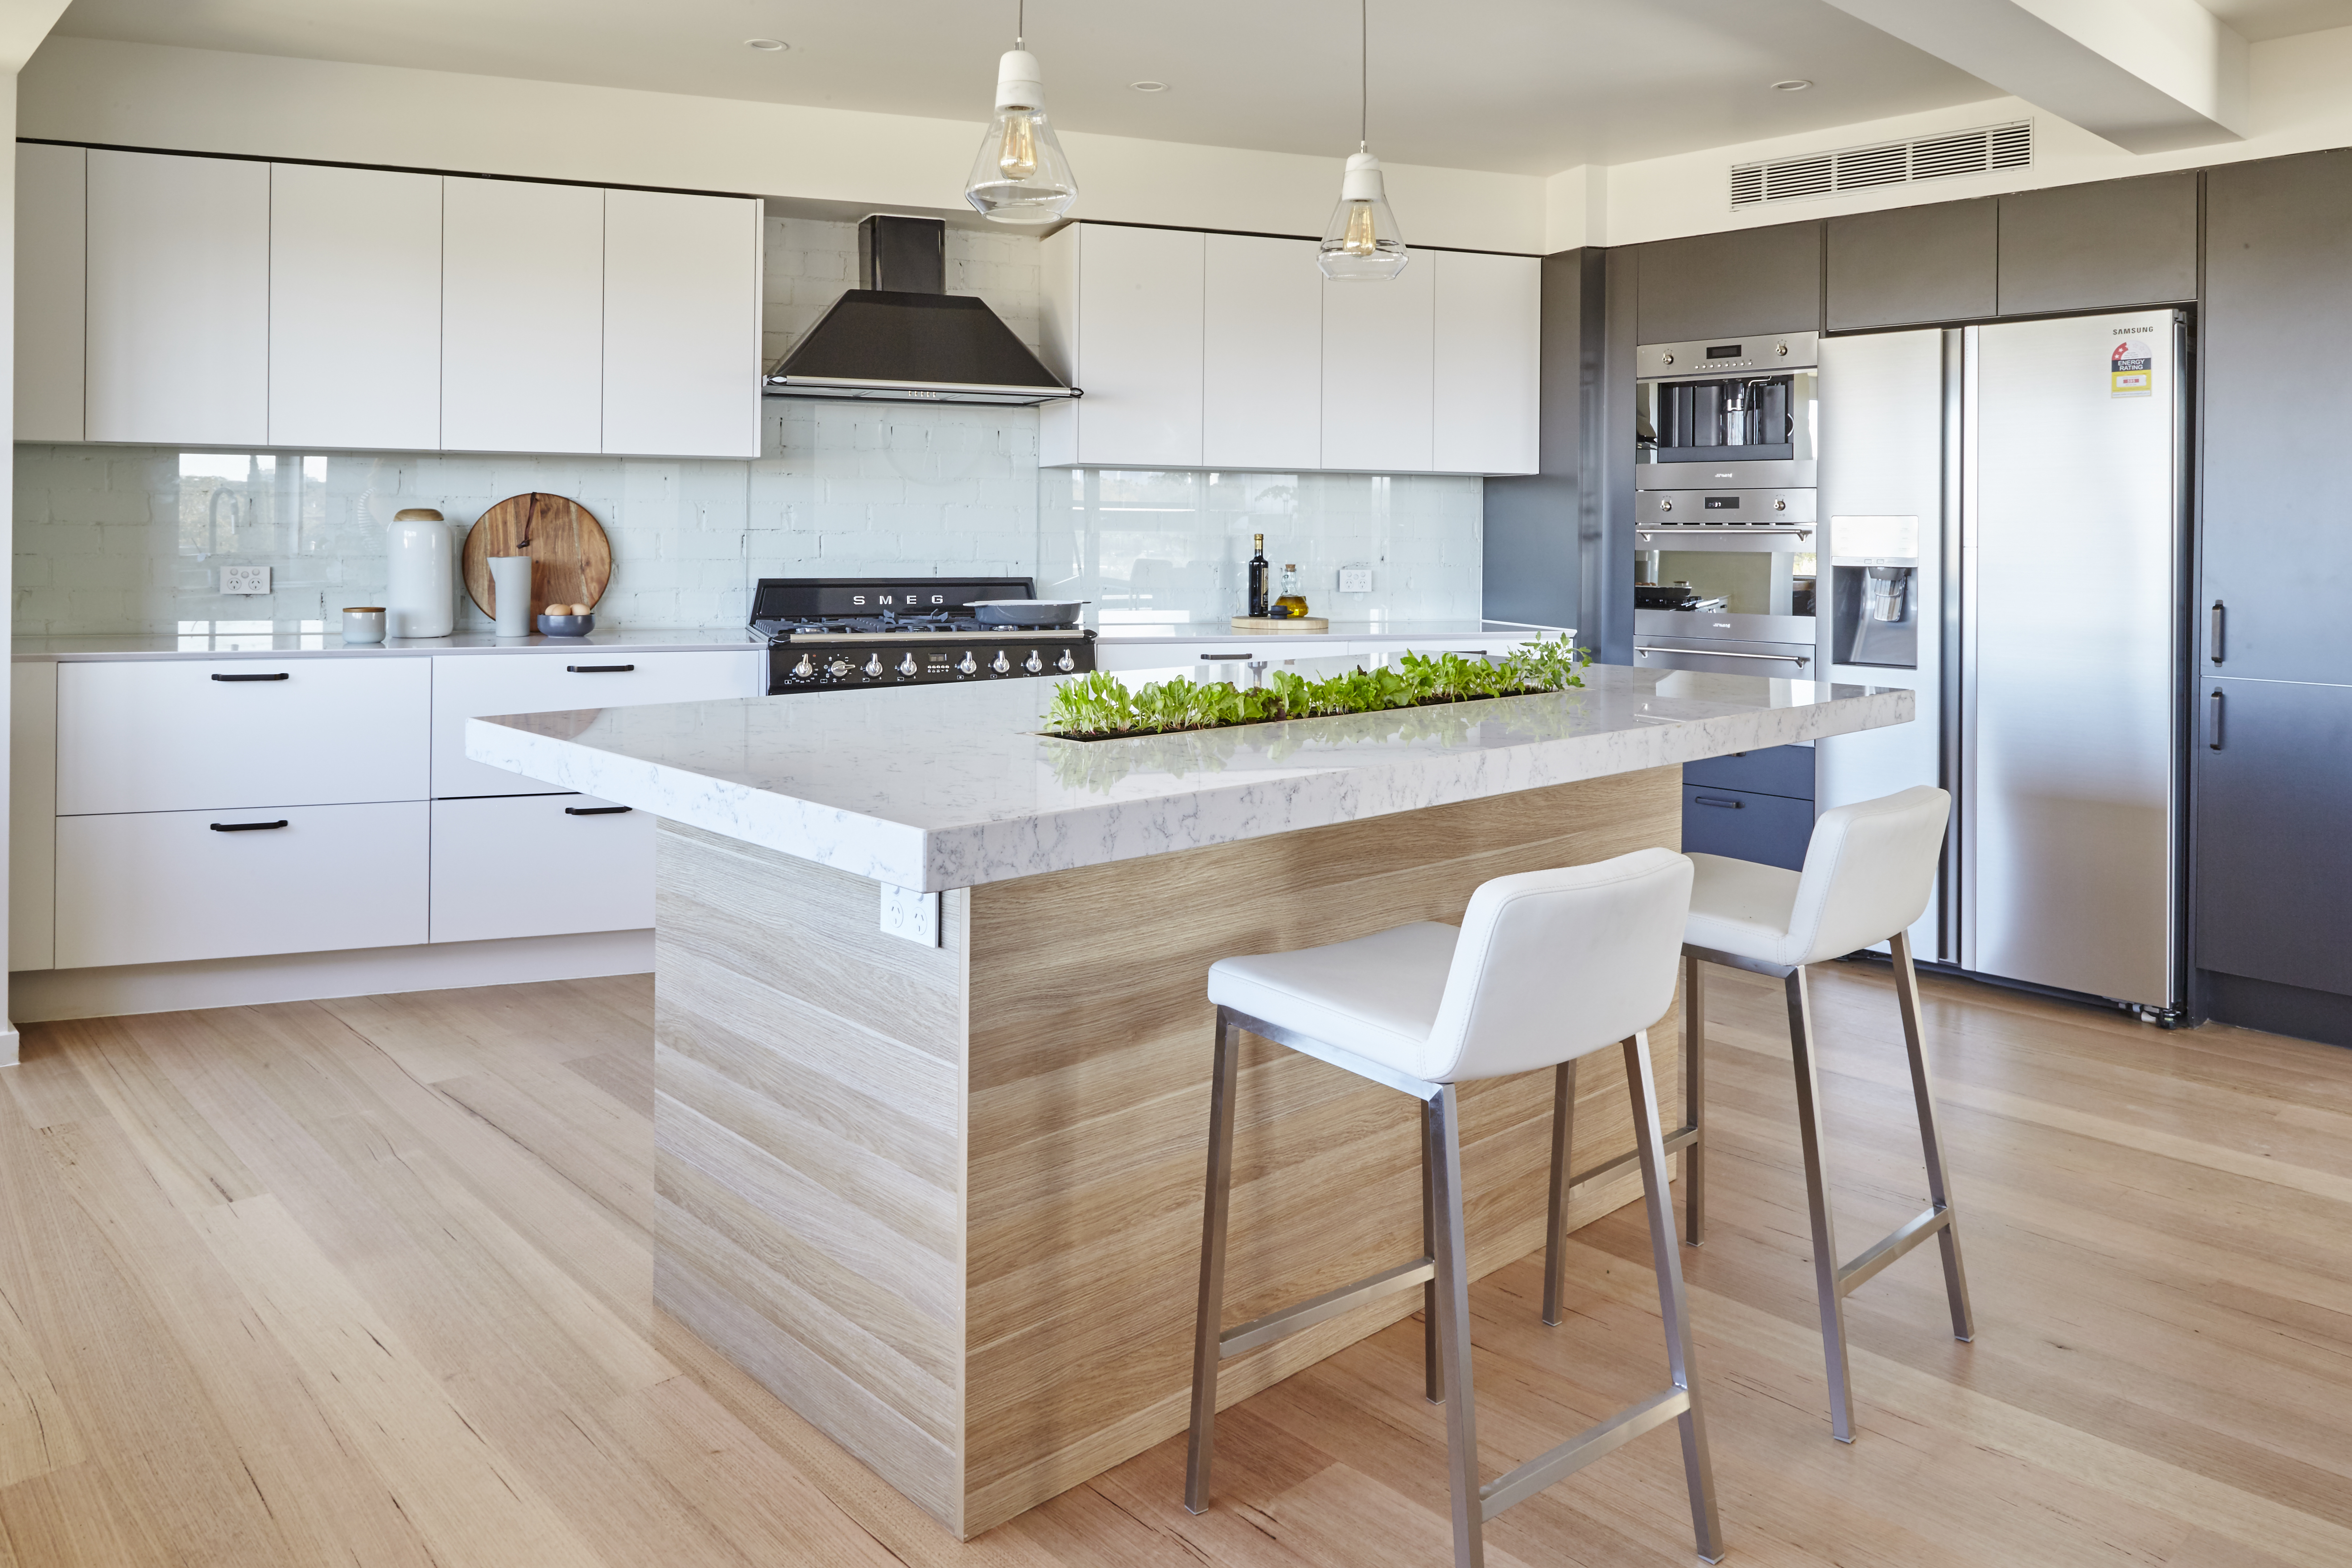 Kitchen design trends 2016 australia - Tips For The Perfect Kitchen From The Block Judge Neale Whitaker